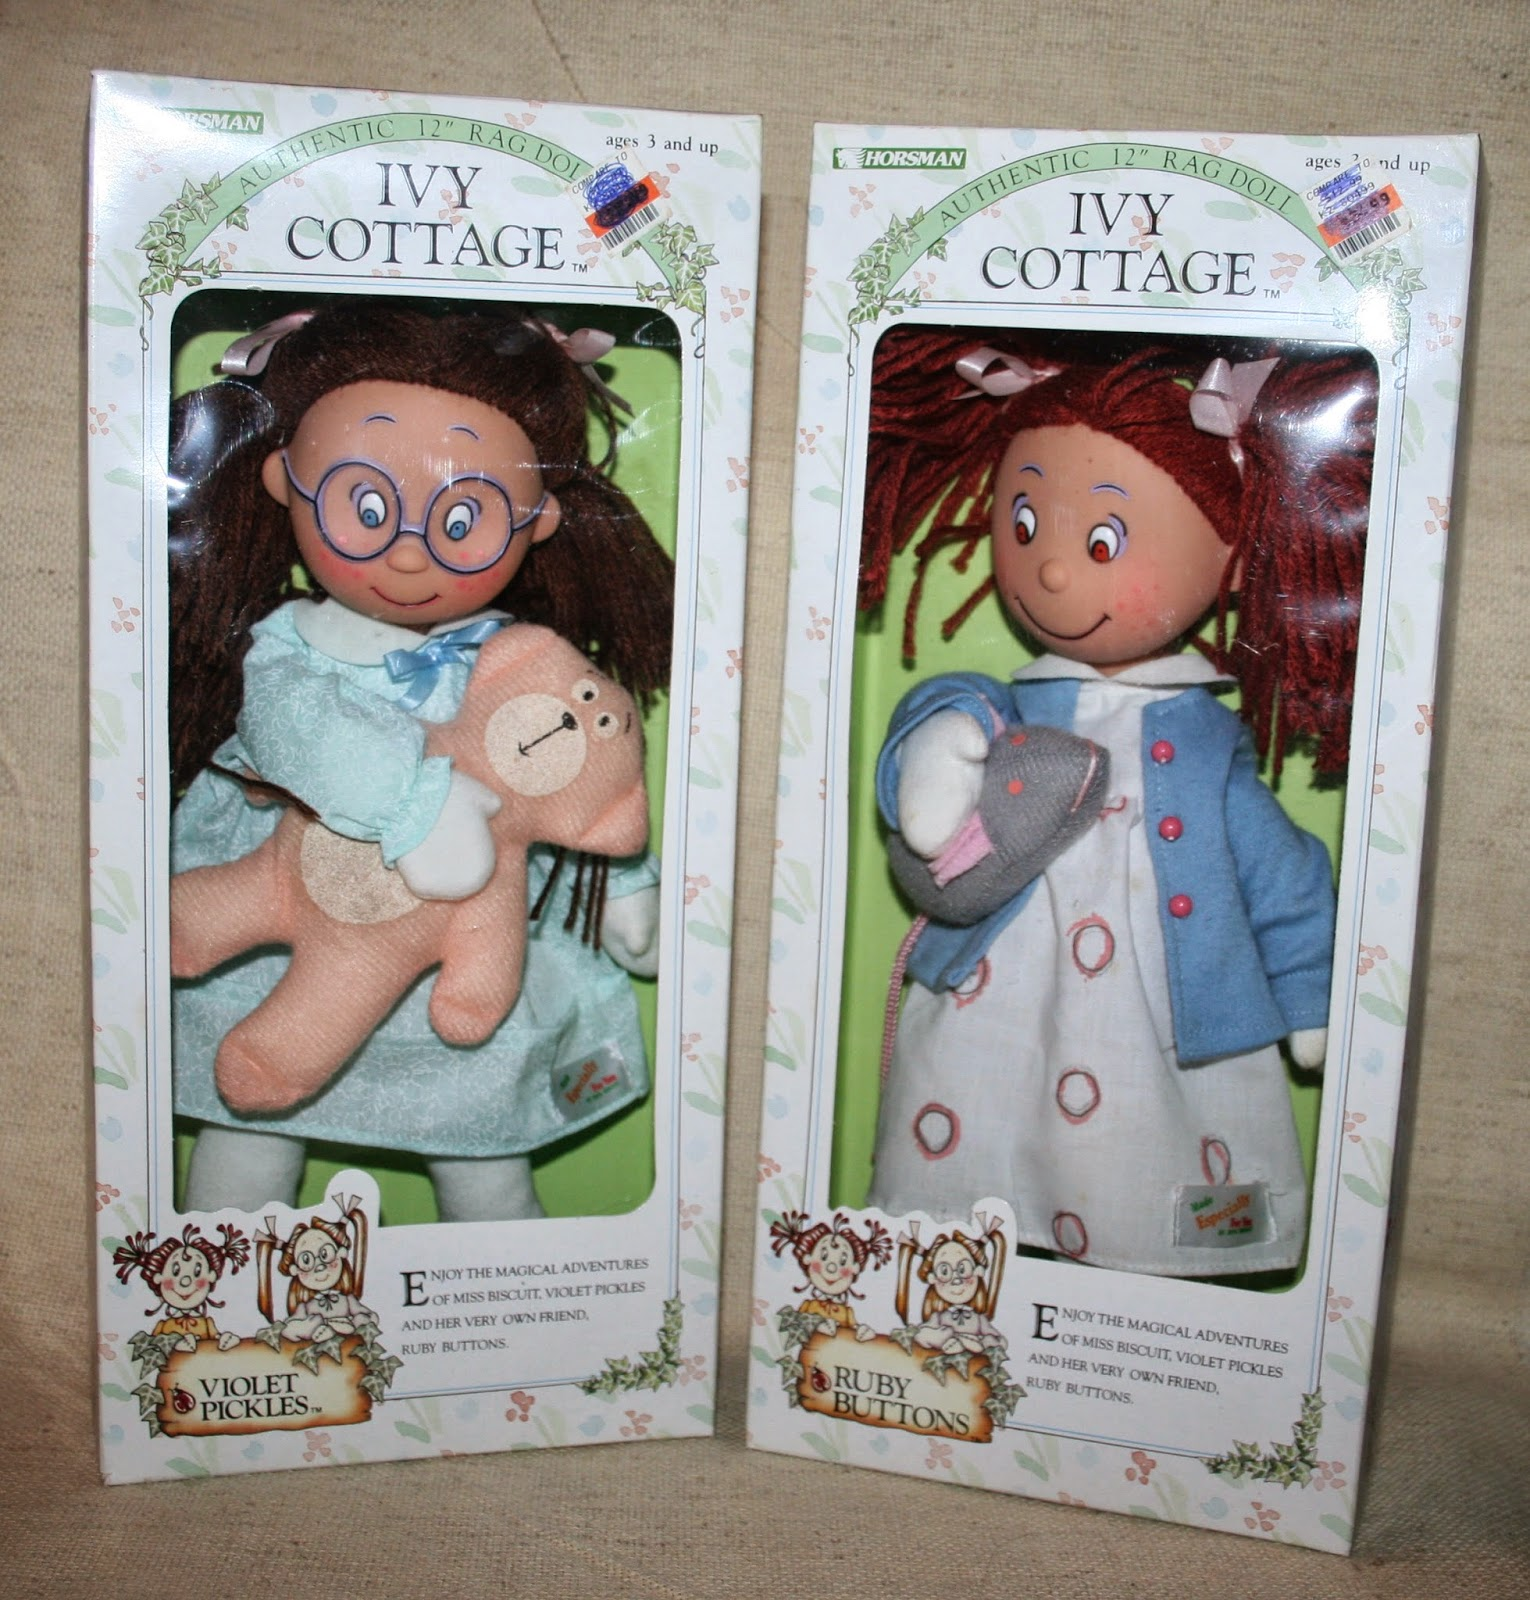 67c7ddf35d0e Today s doll is two dolls again  These two rag dolls named Violet Pickles  and Ruby Buttons.